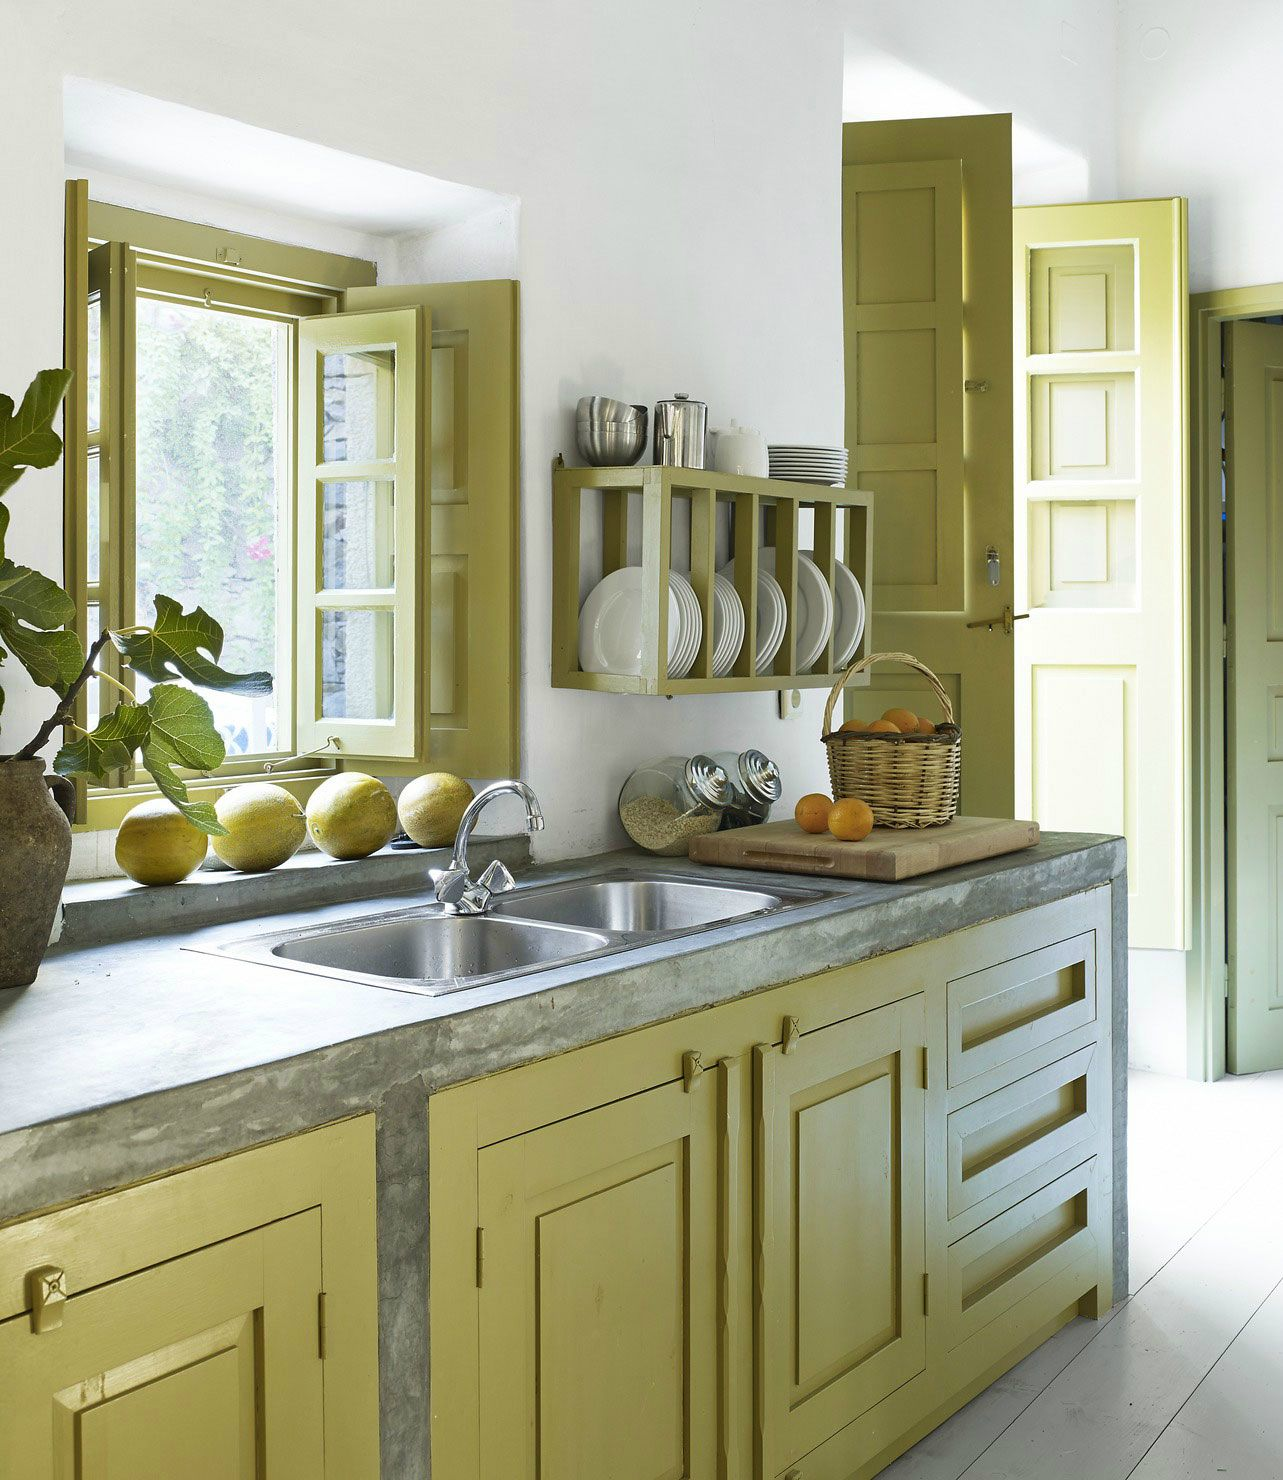 Elle decor predicts the color trends for 2017 yellow for Home kitchen design pictures